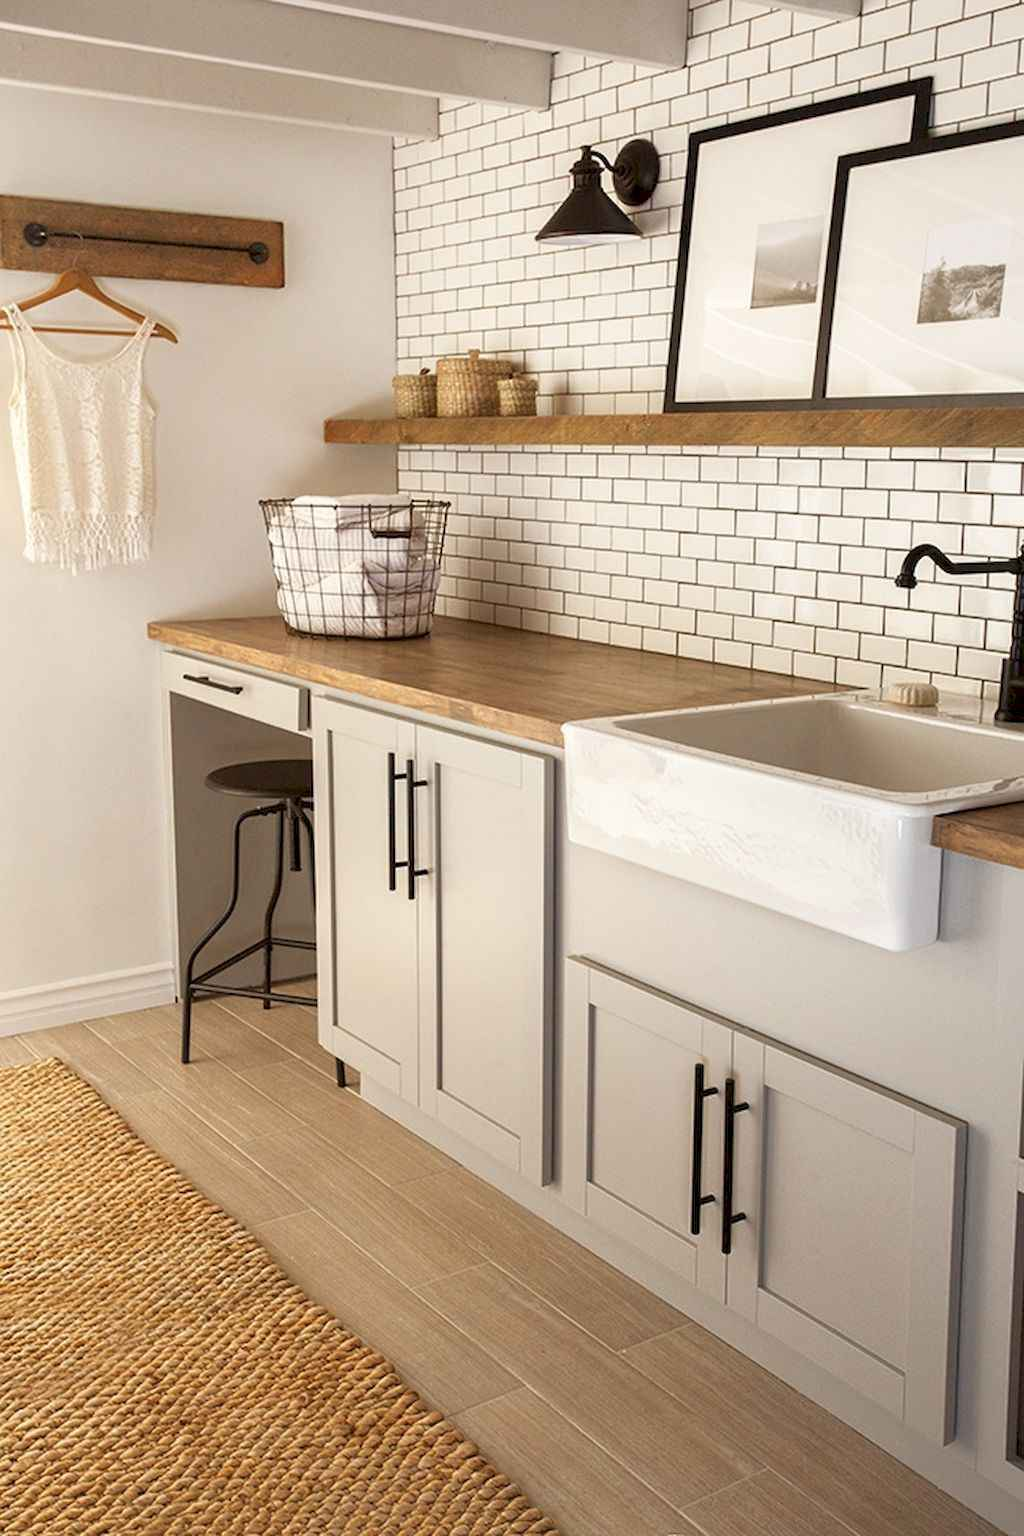 45 Rustic Farmhouse Laundry Room Design Ideas and Makeover (30)